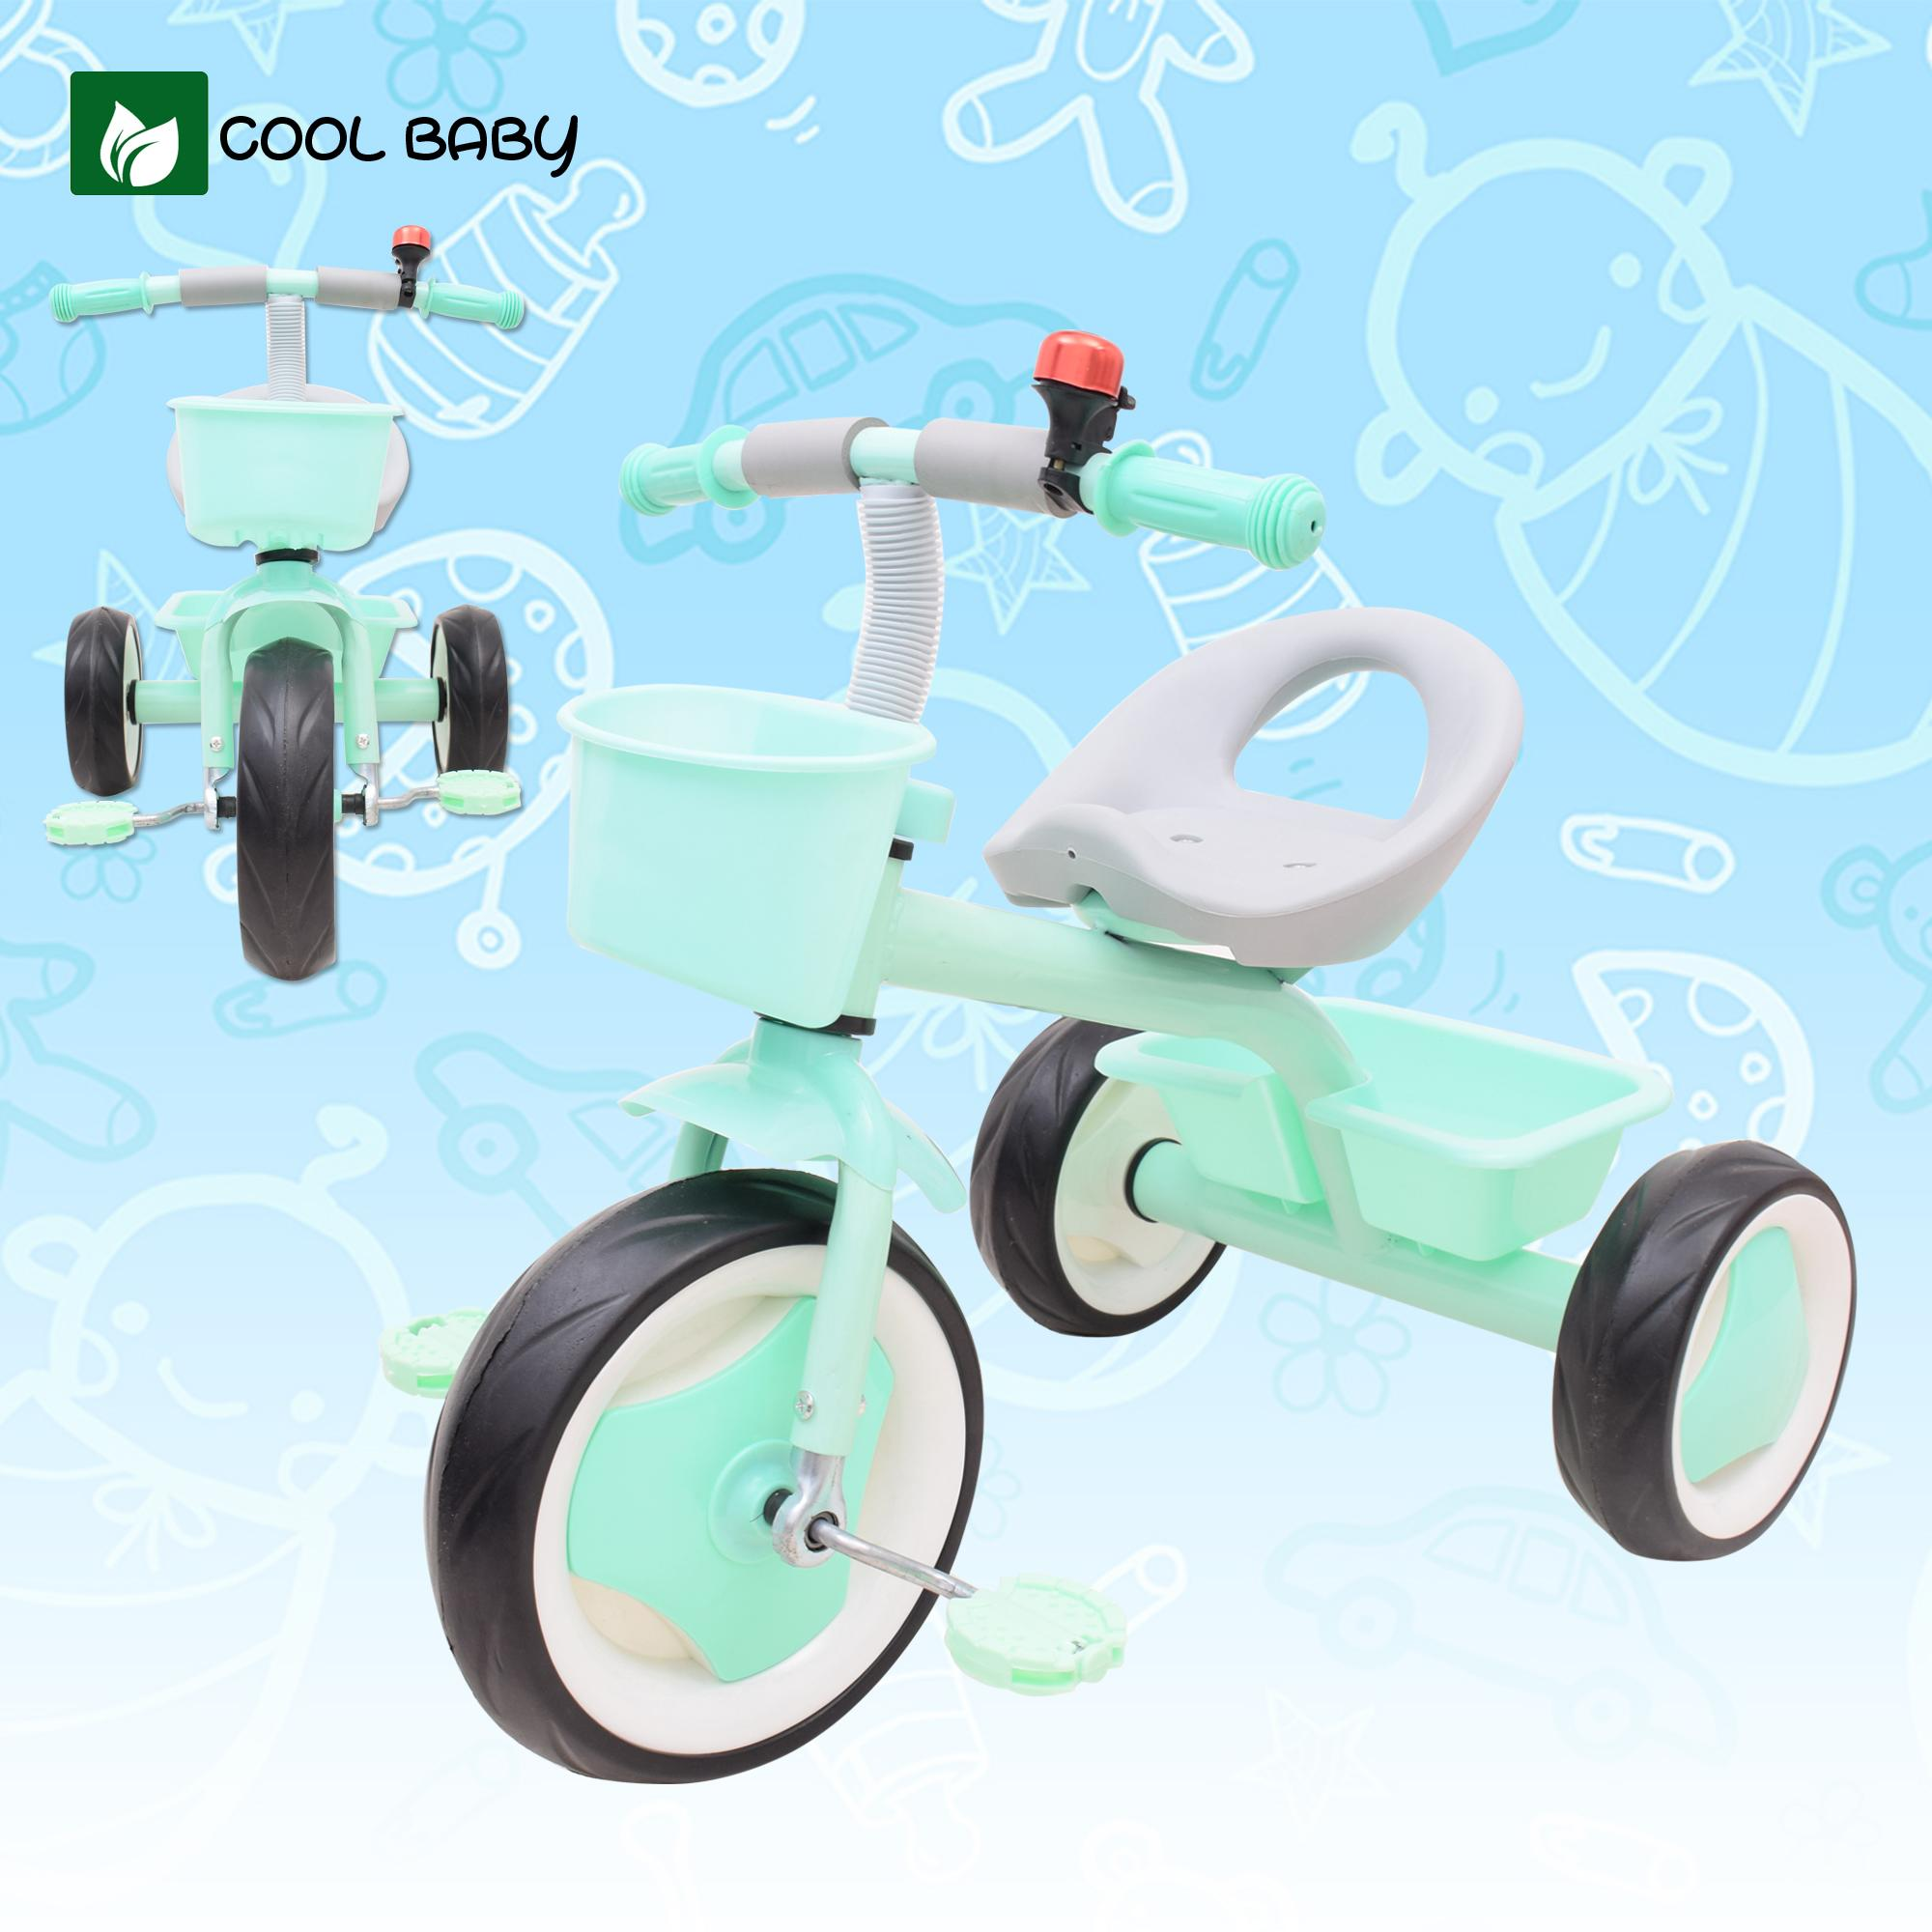 Cool Baby 637 Small Bike Kids Tricycle with Front Basket and Rear Basket  Carrier